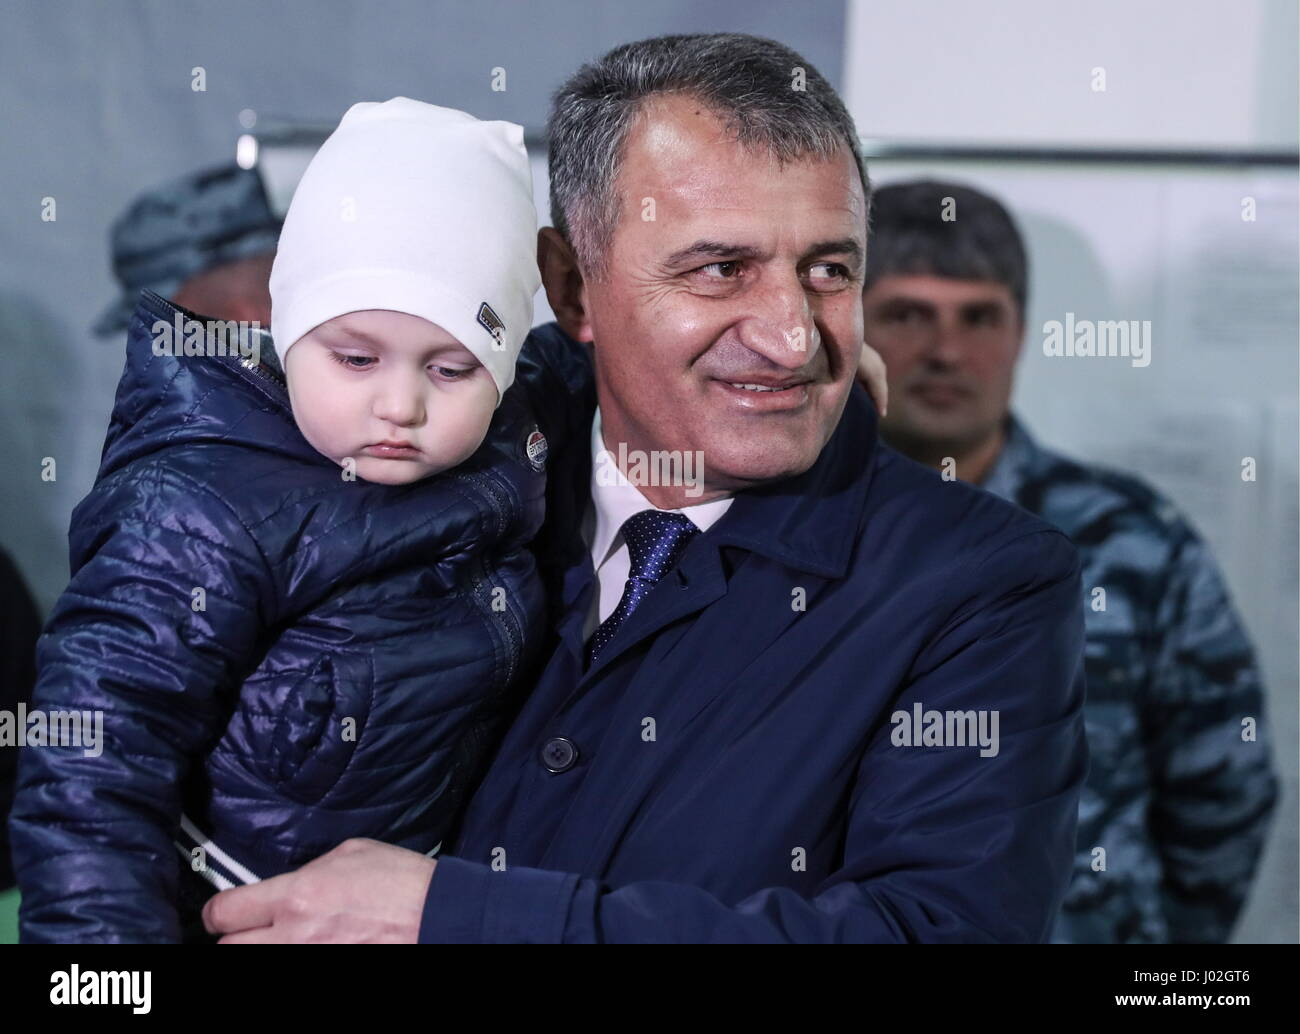 Tskhinval, South Ossetia. 9th Apr, 2017. South Ossetian Parliament Chairman, presidential candidate Anatoly Bibilov - Stock Image